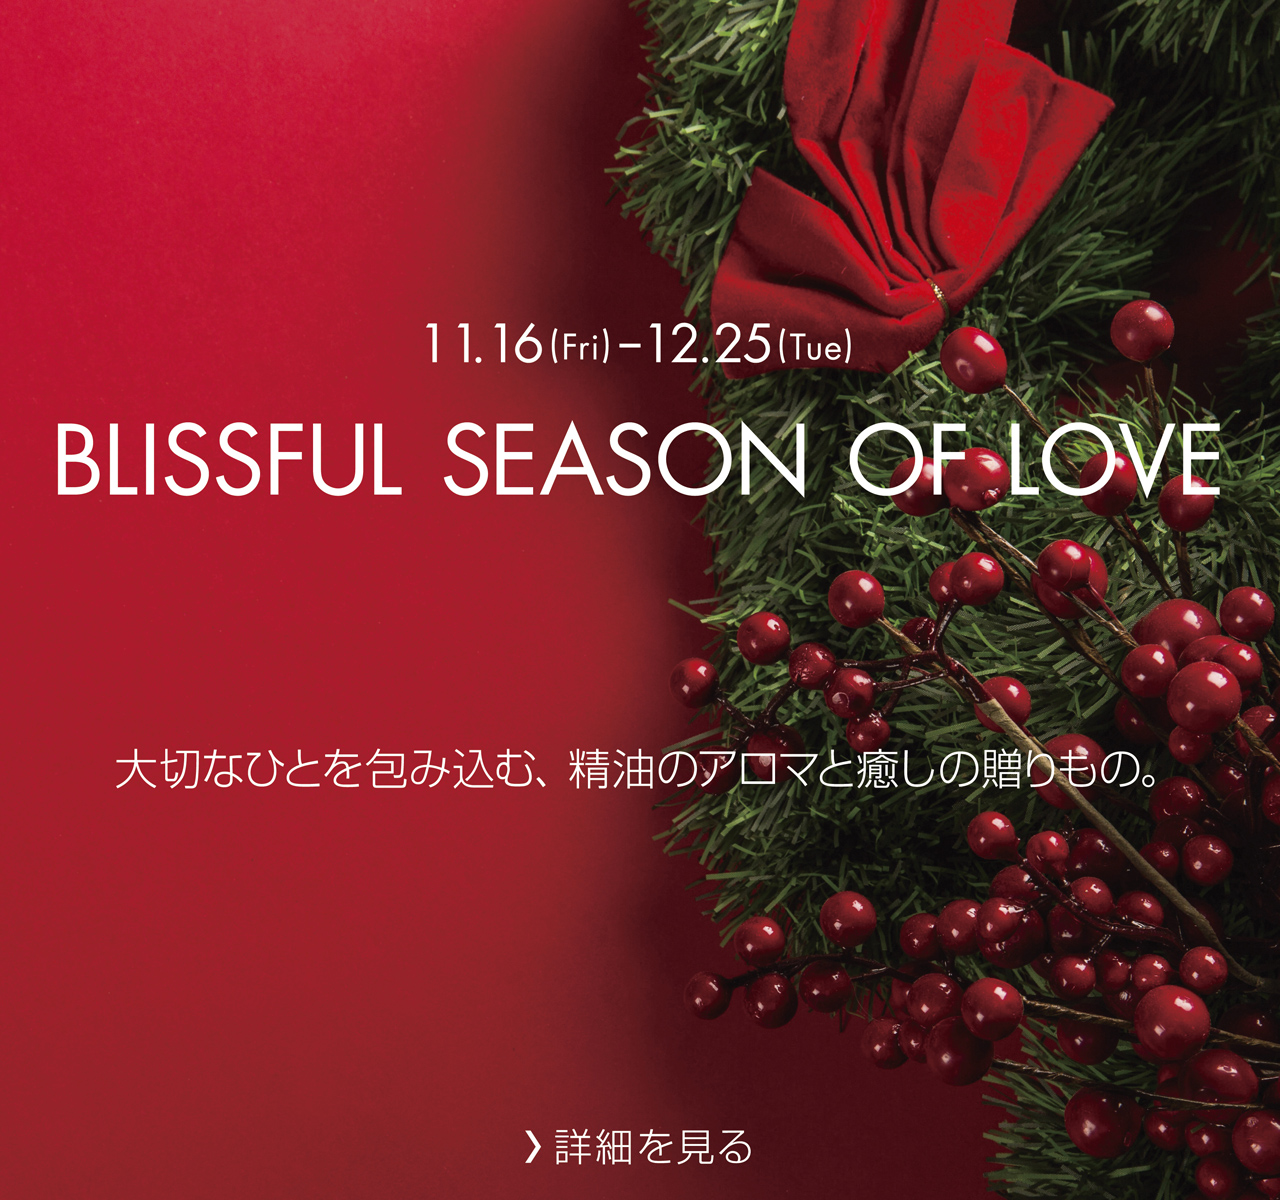 BLISSFUL SEASON OF LOVE